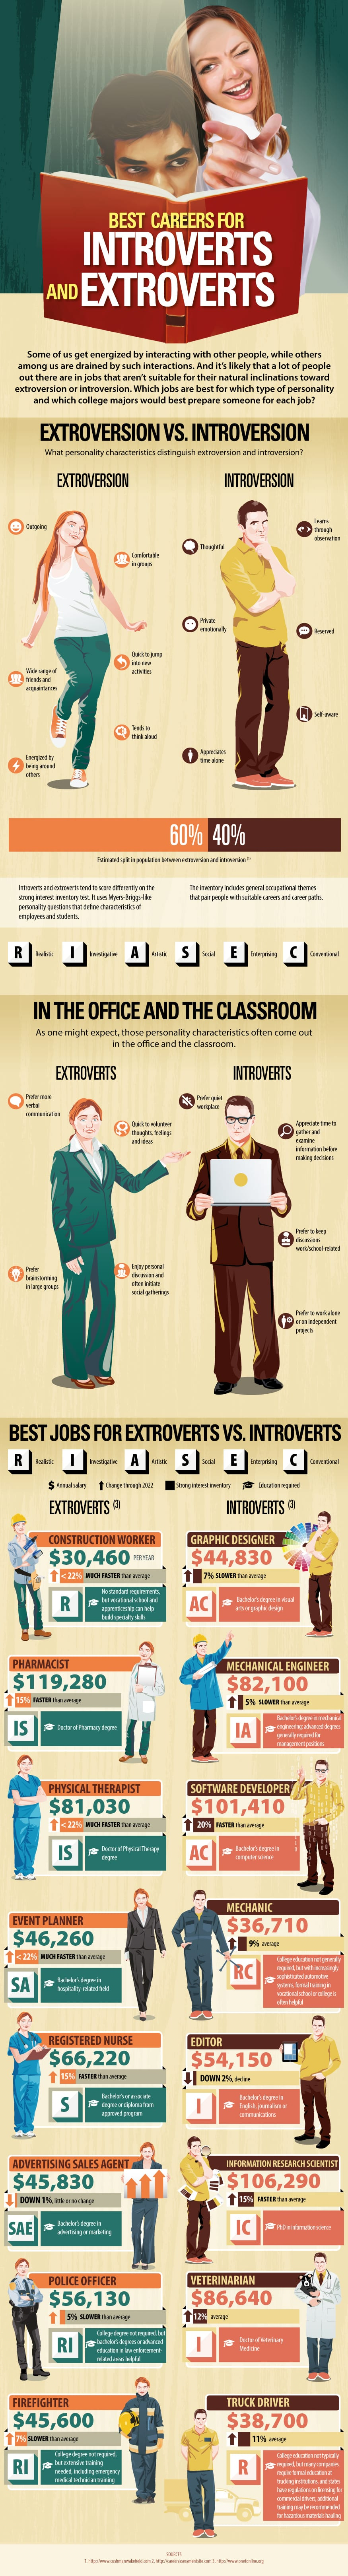 Career Infographic